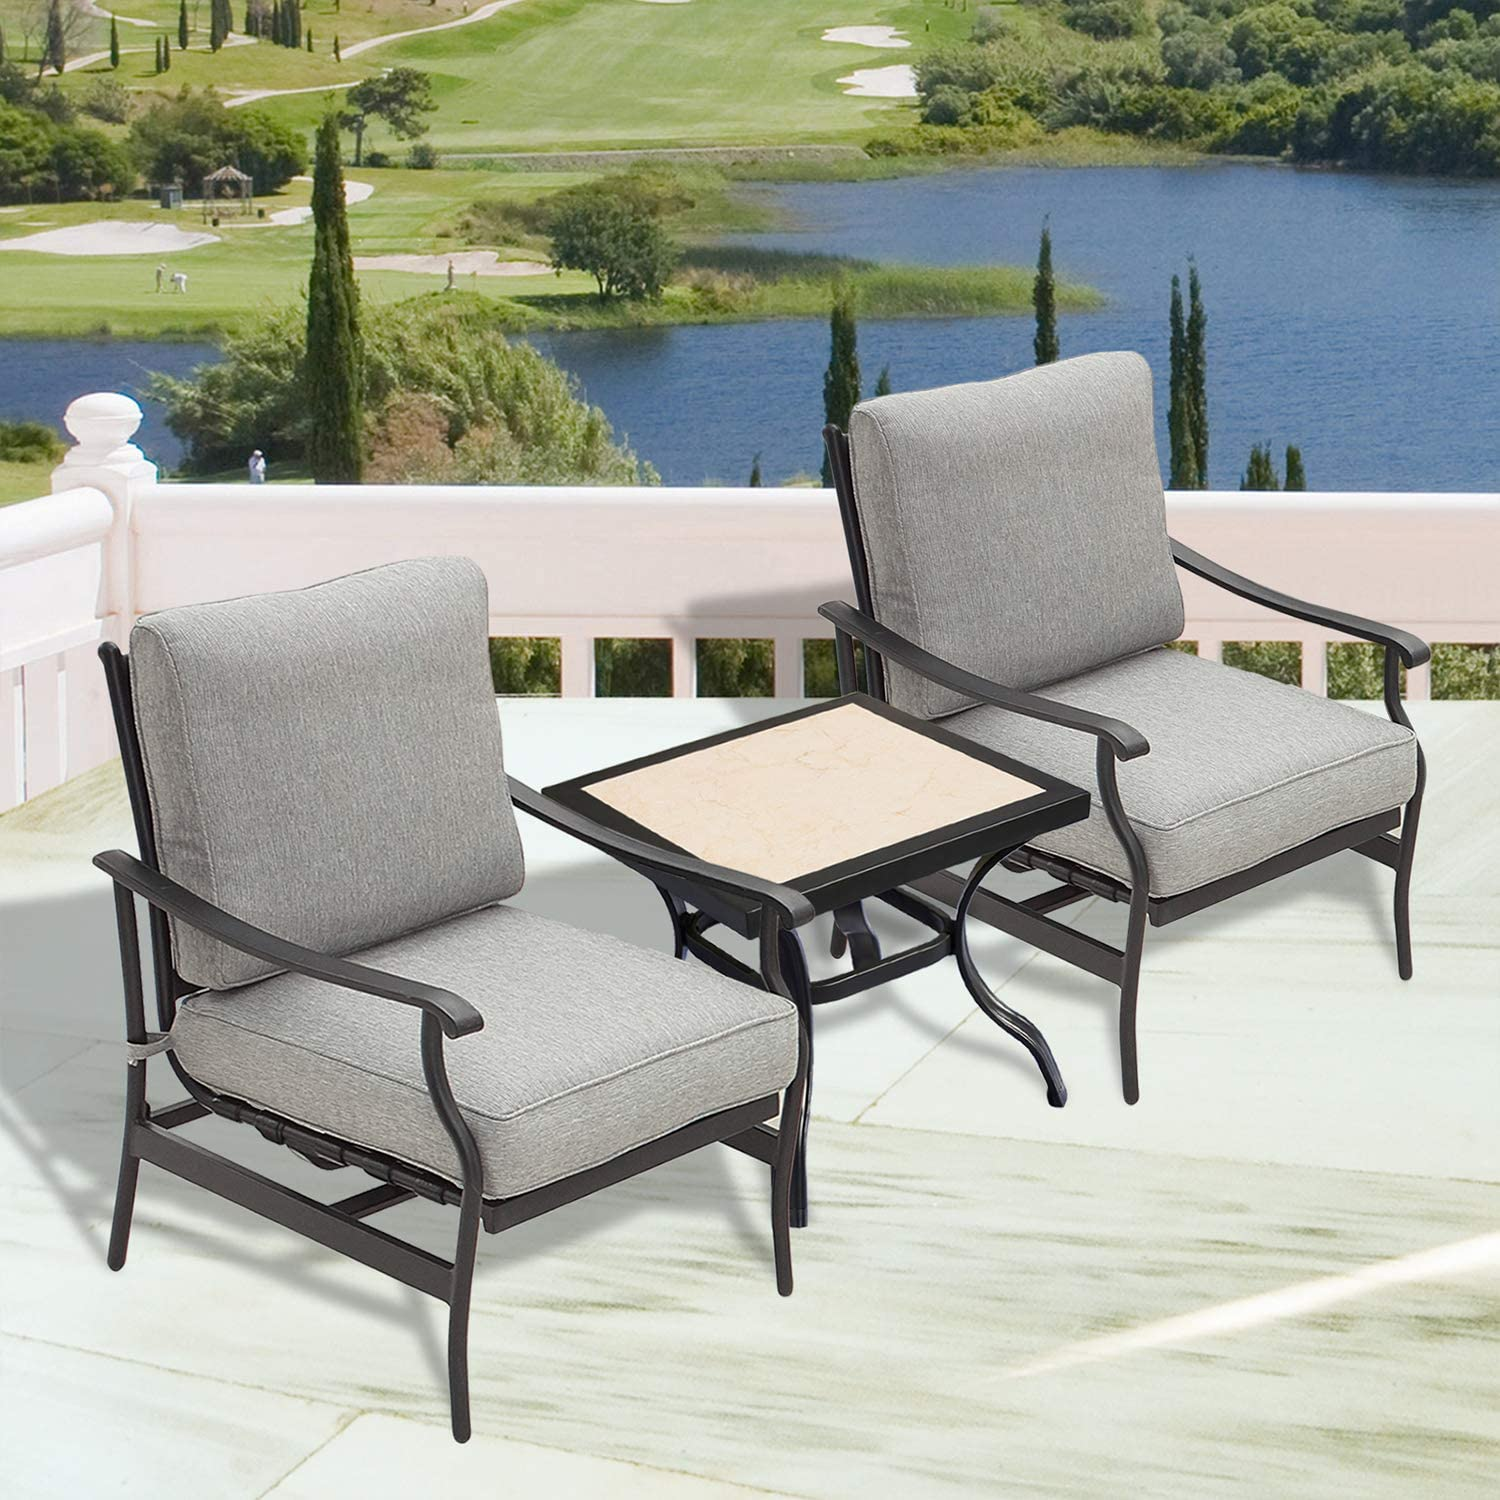 Amazon Com Patiofestival Outdoor Bistro Set Cushioned Rocking Dining Sofa Chairs Square Table With 5 1 Inch Seat Cushion Patio Conversation Sets 3pcs Garden Outdoor